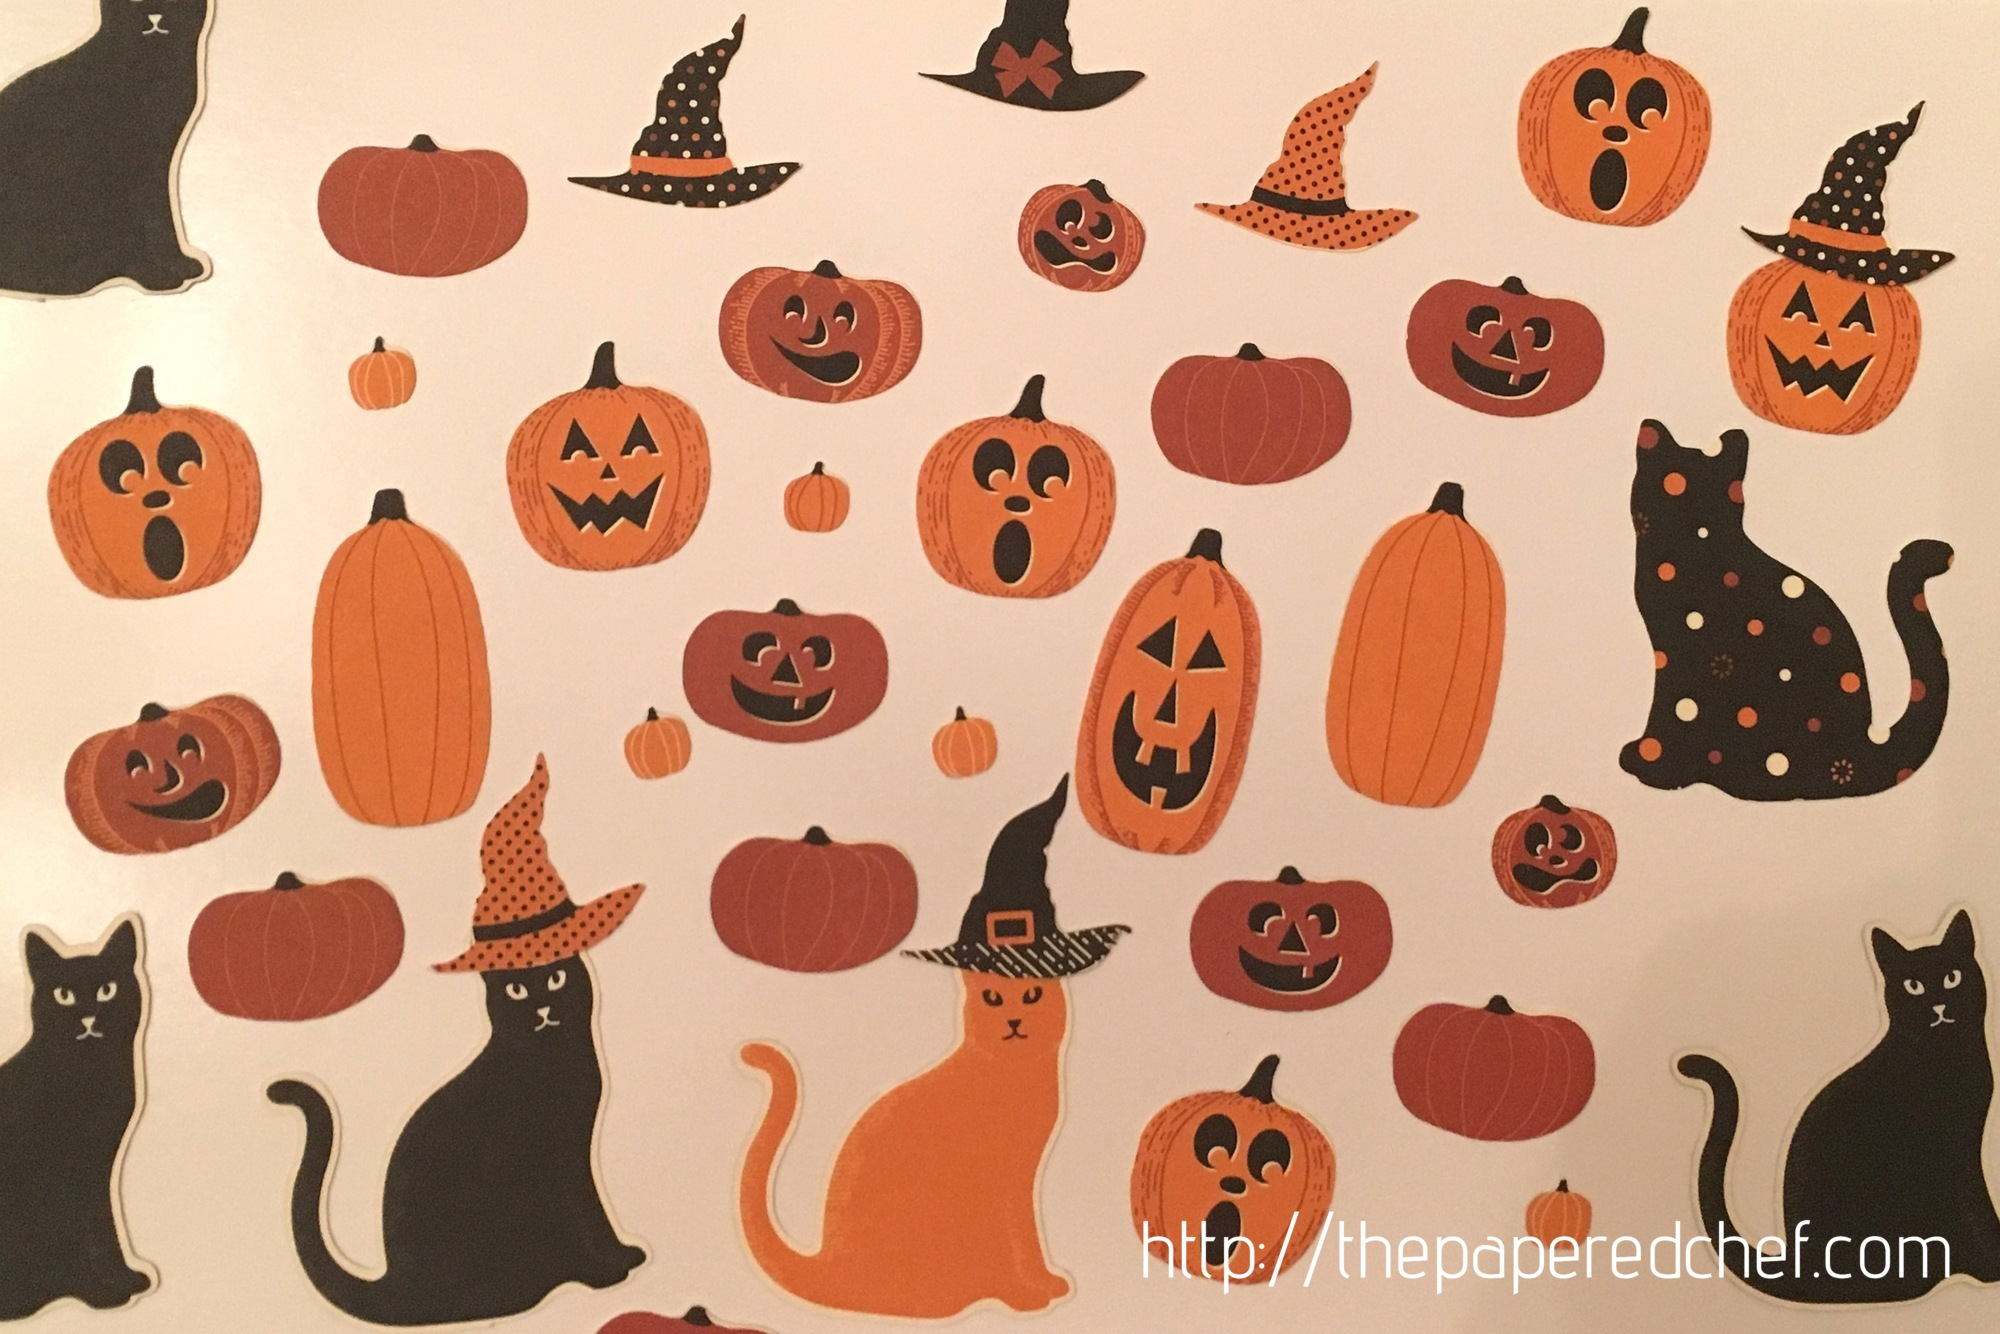 Pumpkins, Cats, and Hats cut out from the Spooky Night dsp